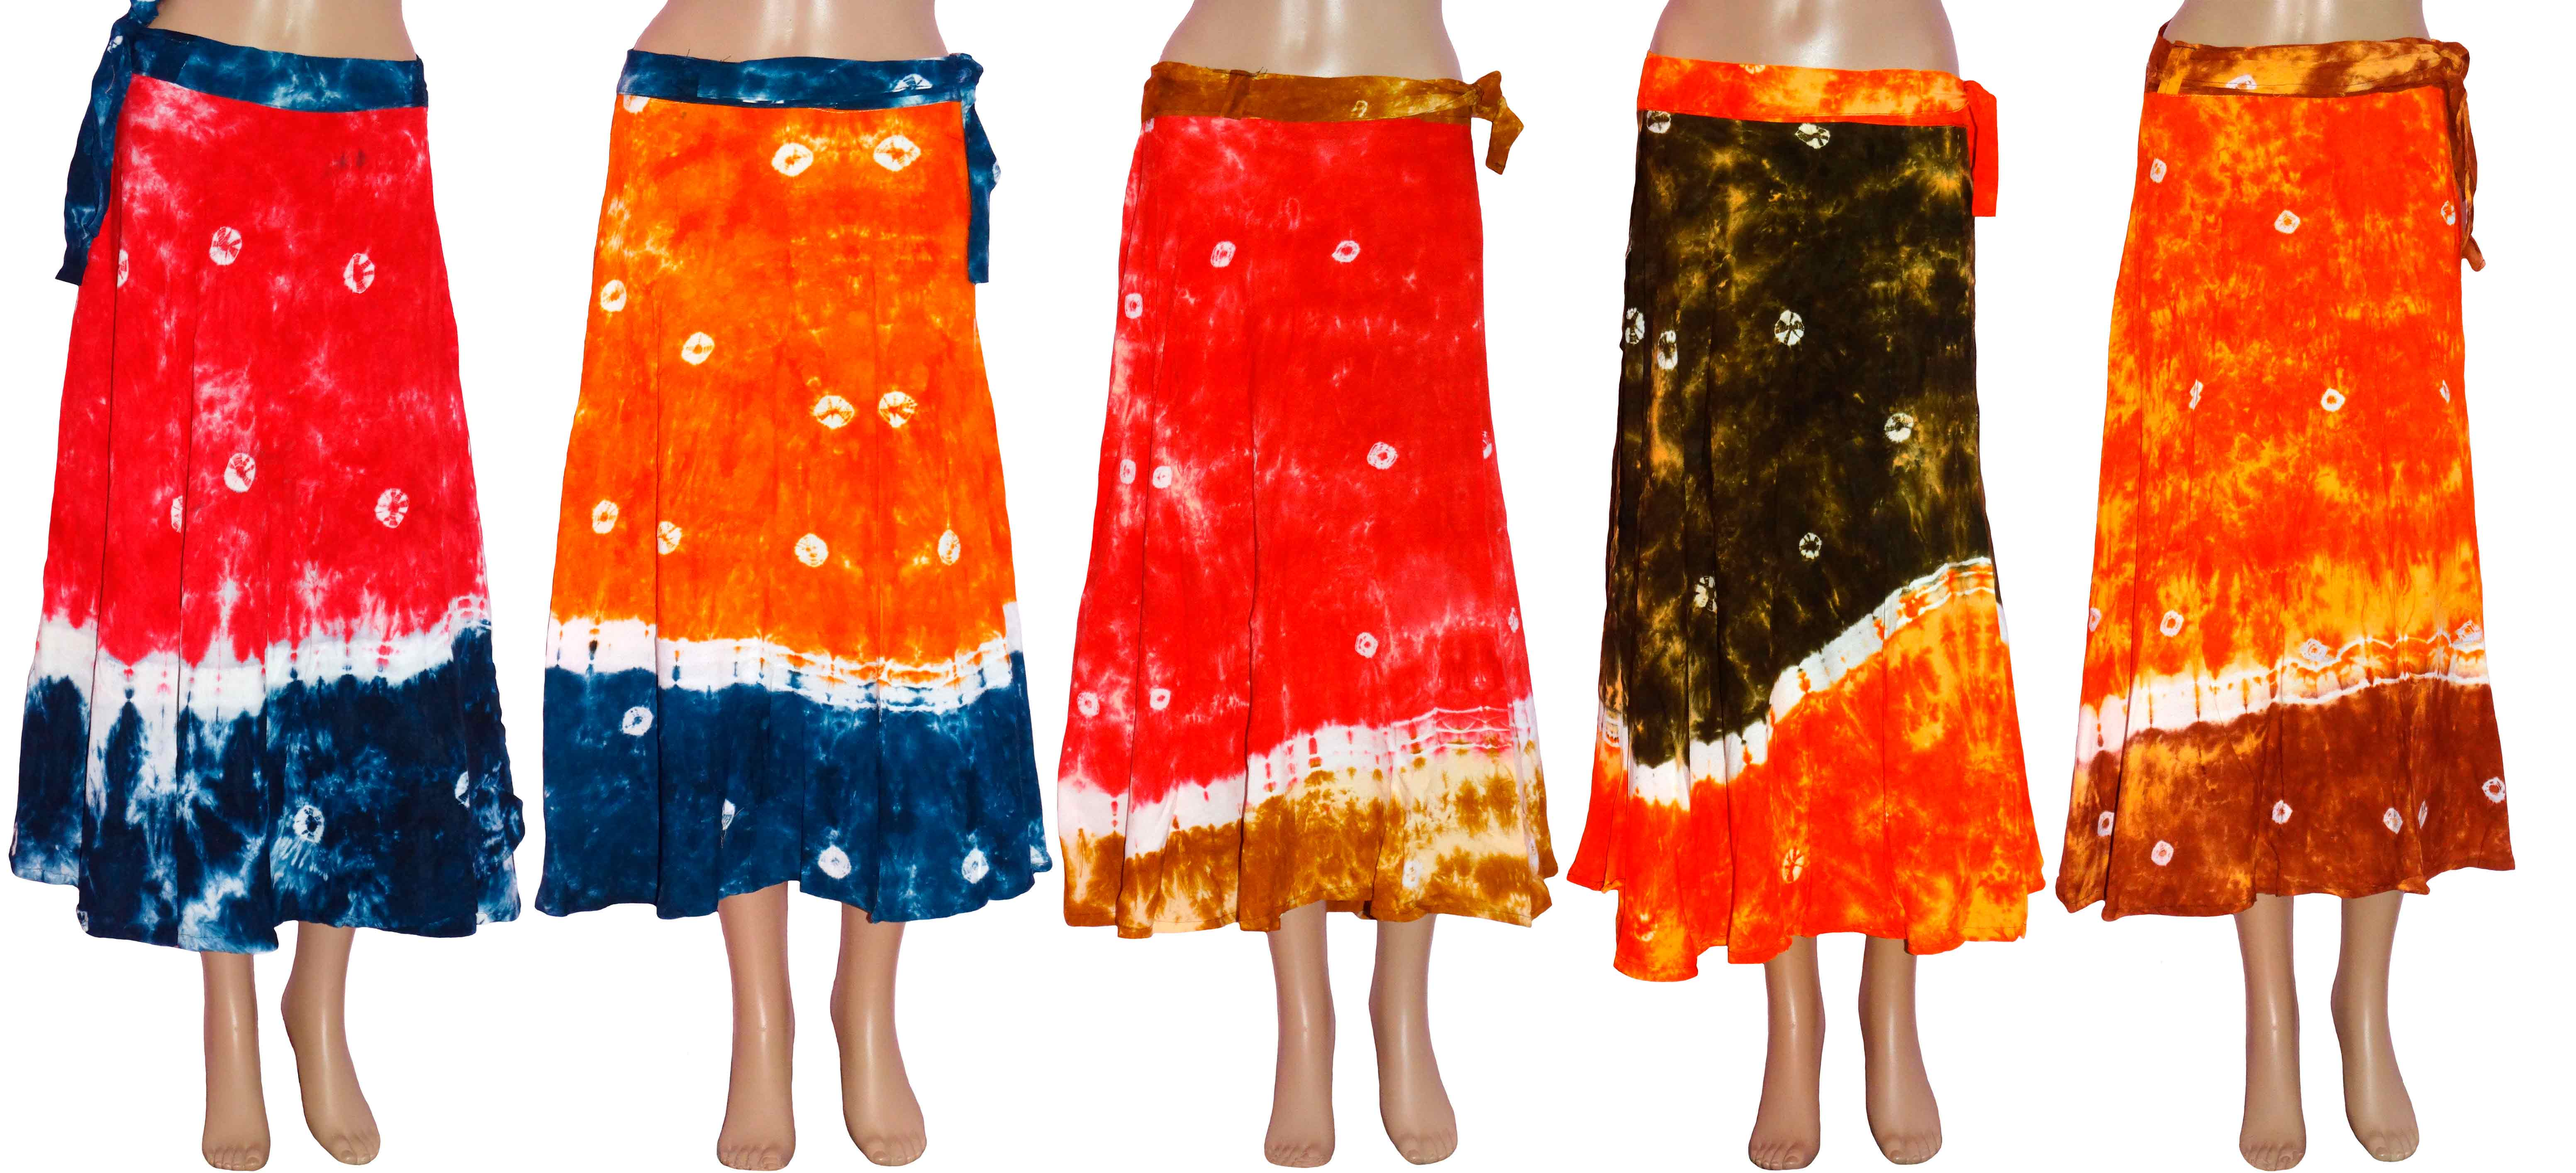 Skirts and Wrap Around clothing